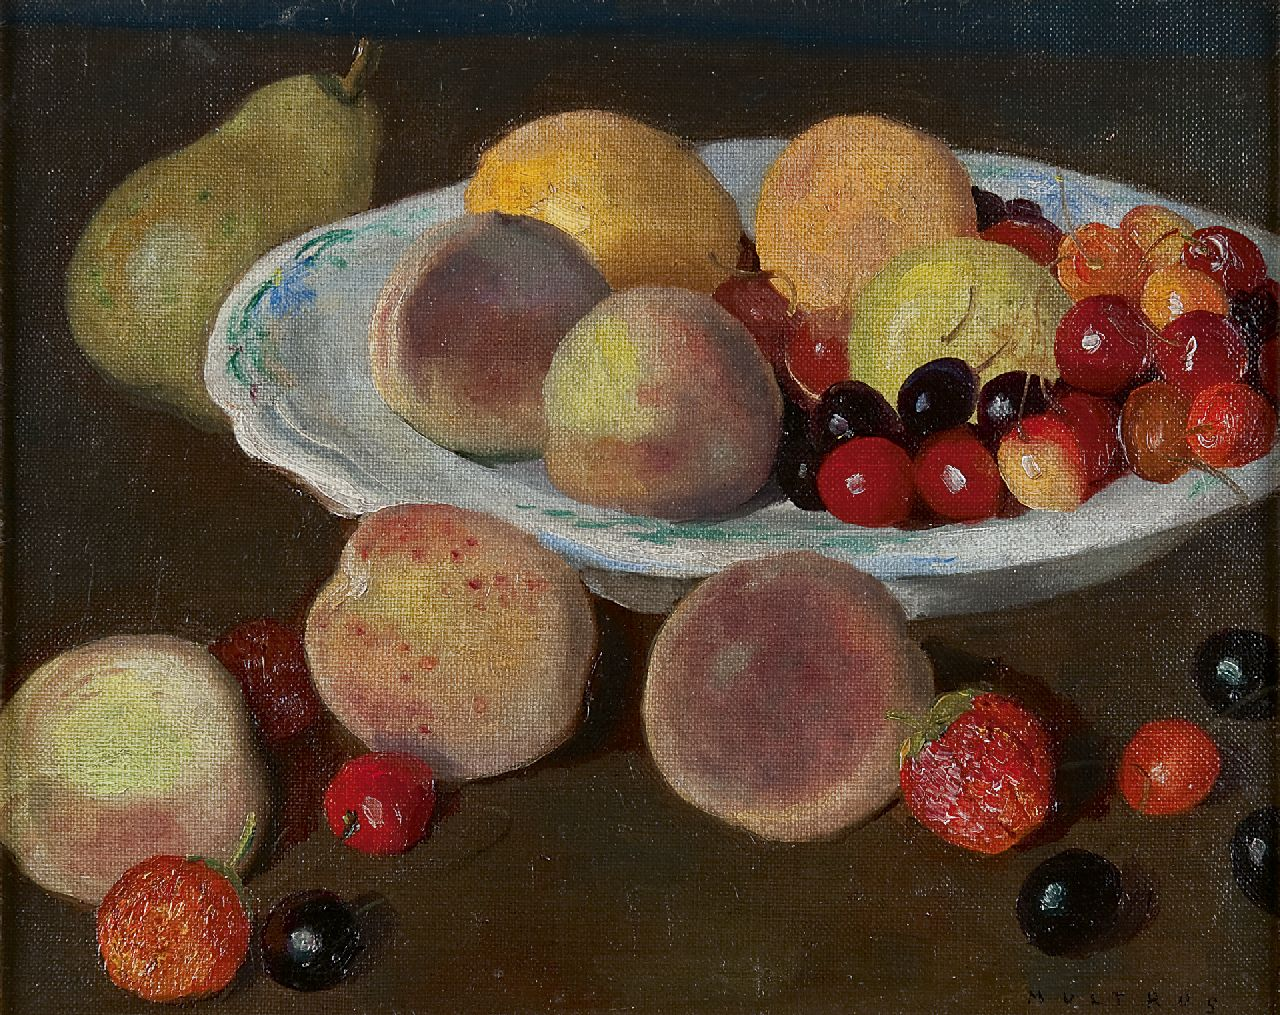 Josef Multrus | A fruit still life with peaches and cherries, oil on canvas, 25.7 x 31.5 cm, signed l.r.